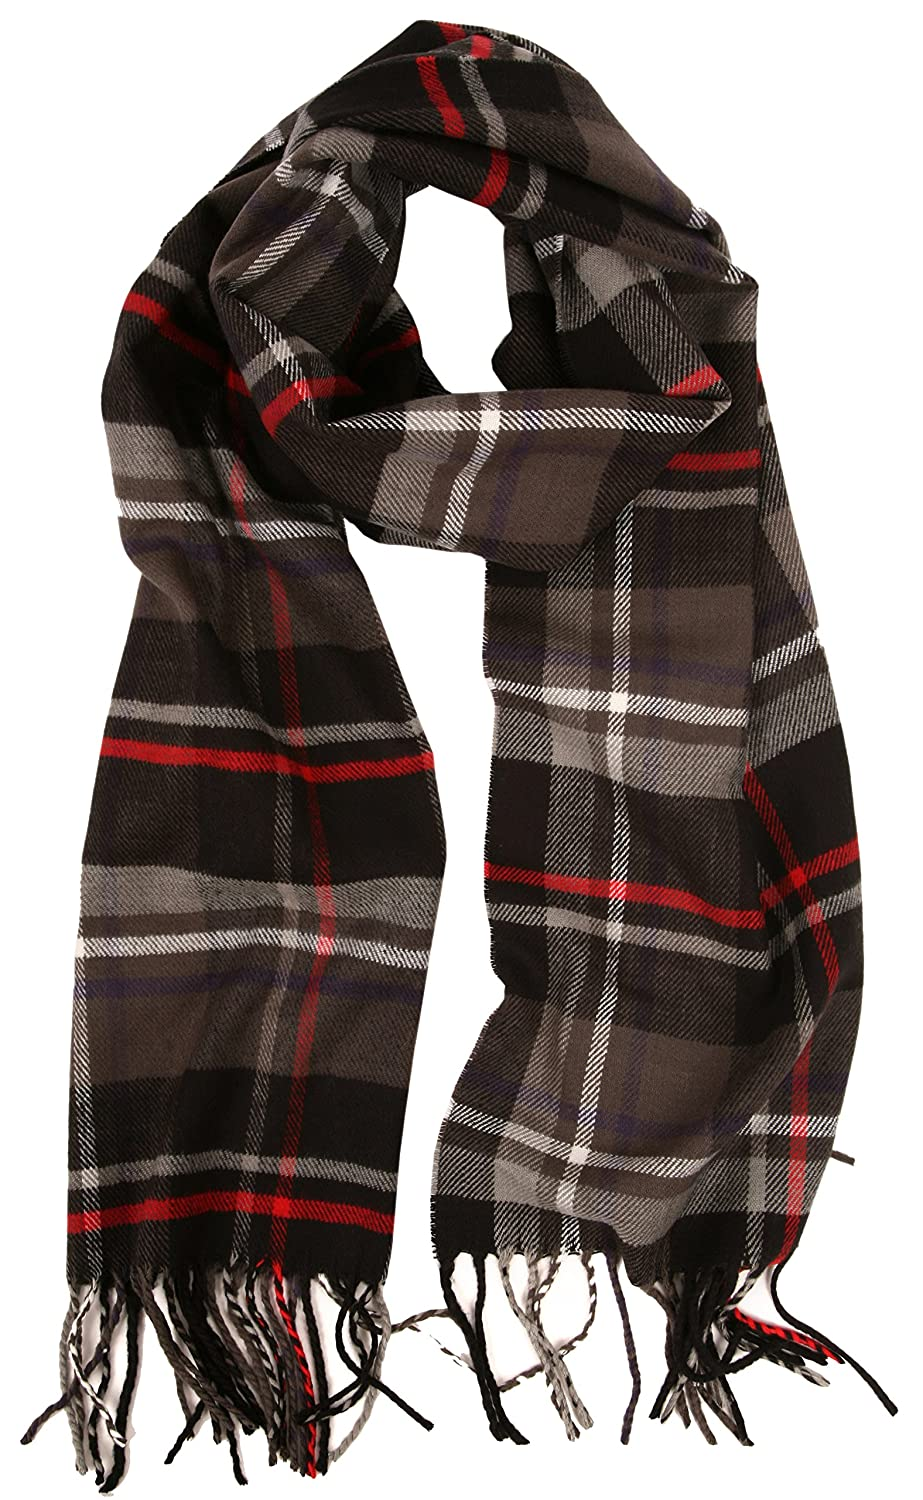 8d958ad32 Love Lakeside-Men's Cashmere Feel Winter Plaid Scarf (One, 001-Gray, Black,  Red) at Amazon Men's Clothing store: